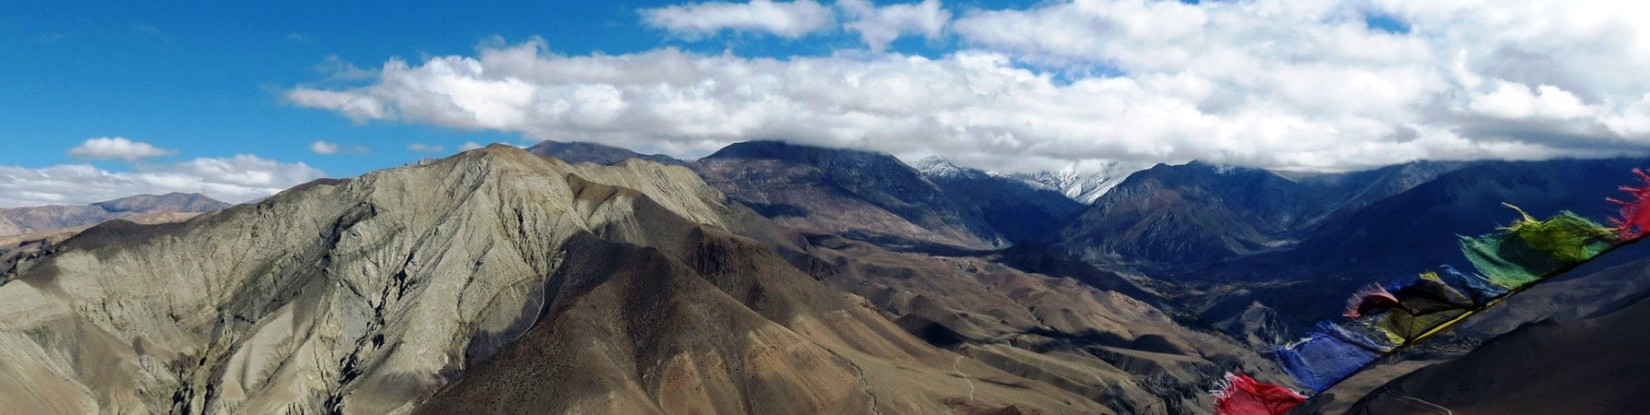 Barren Landscapes of Mustang where wind blows so peaceful and calm